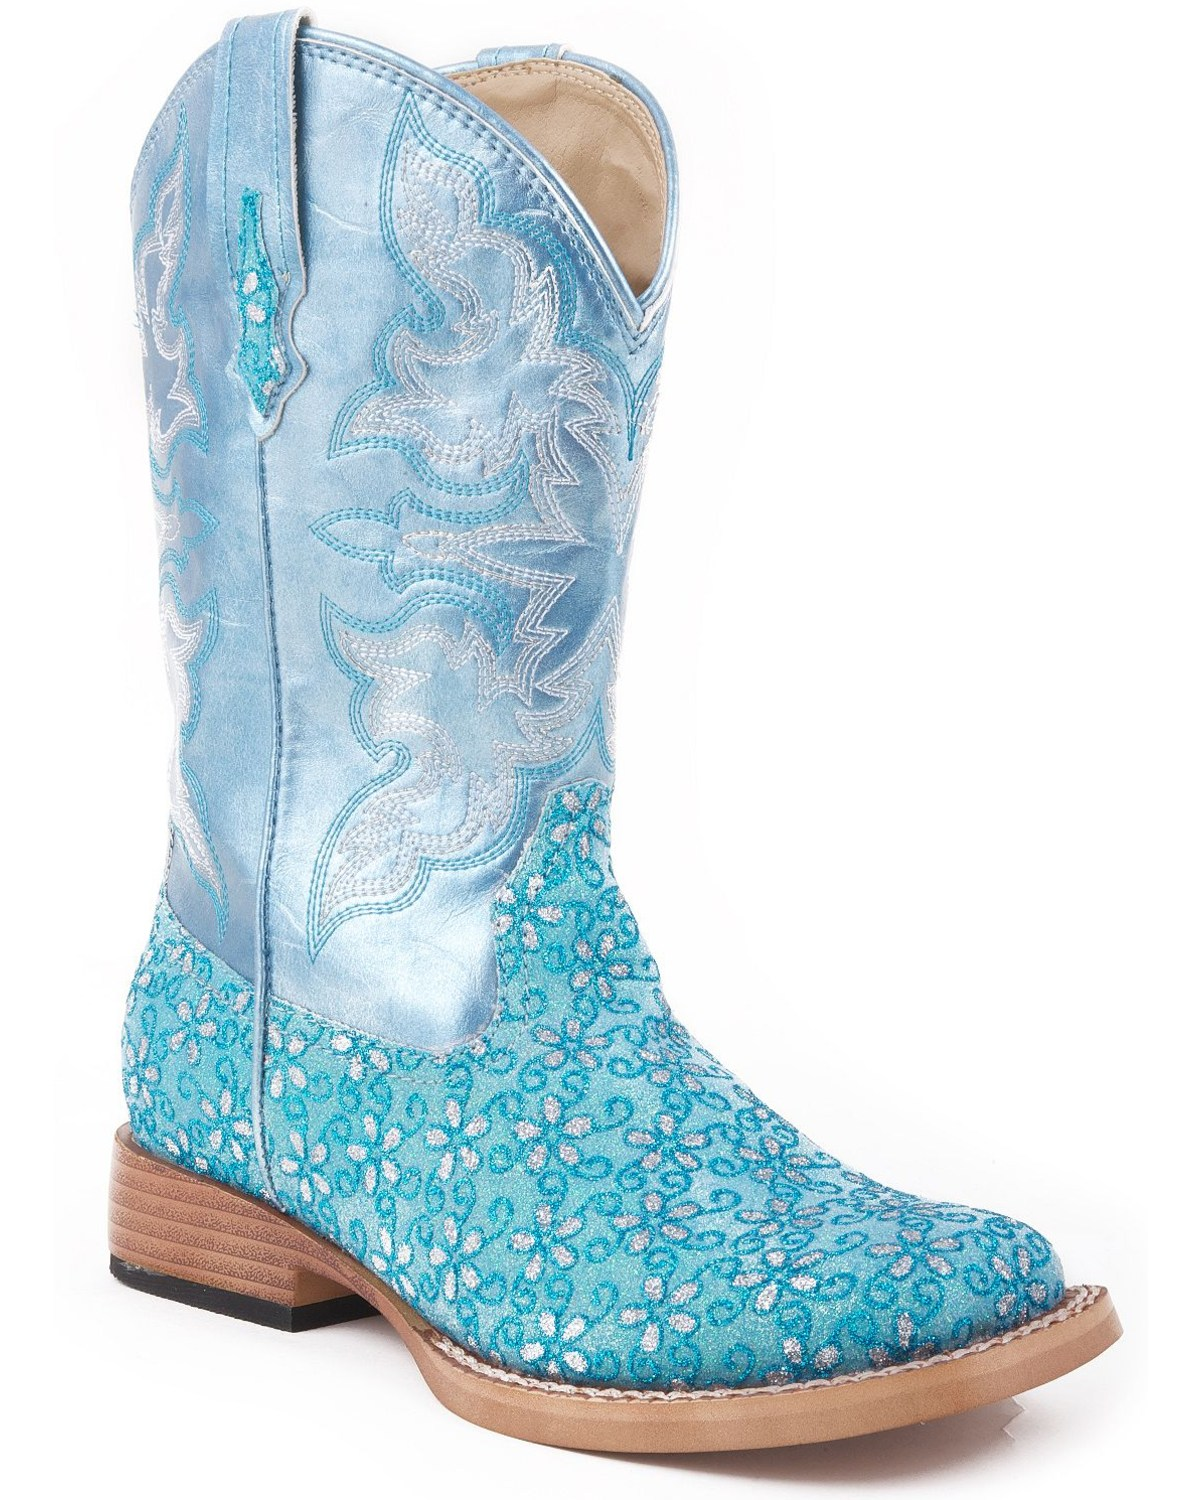 Girls boots boot barn roper kids floral glitter western boots blue hi res izmirmasajfo Images